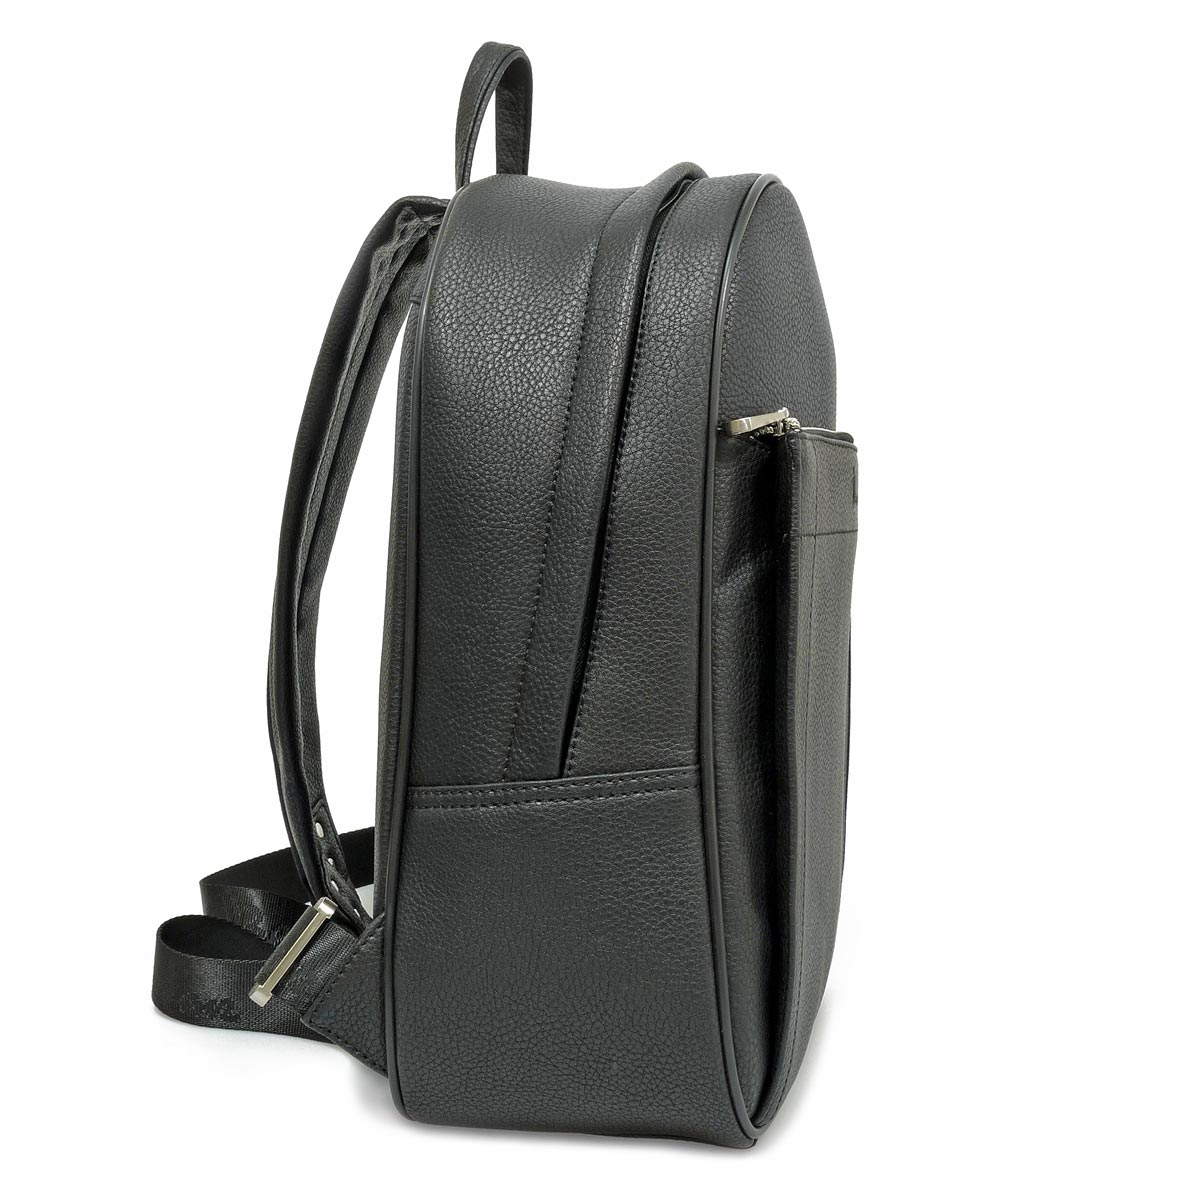 812-91382-1 Backpack Pellekon